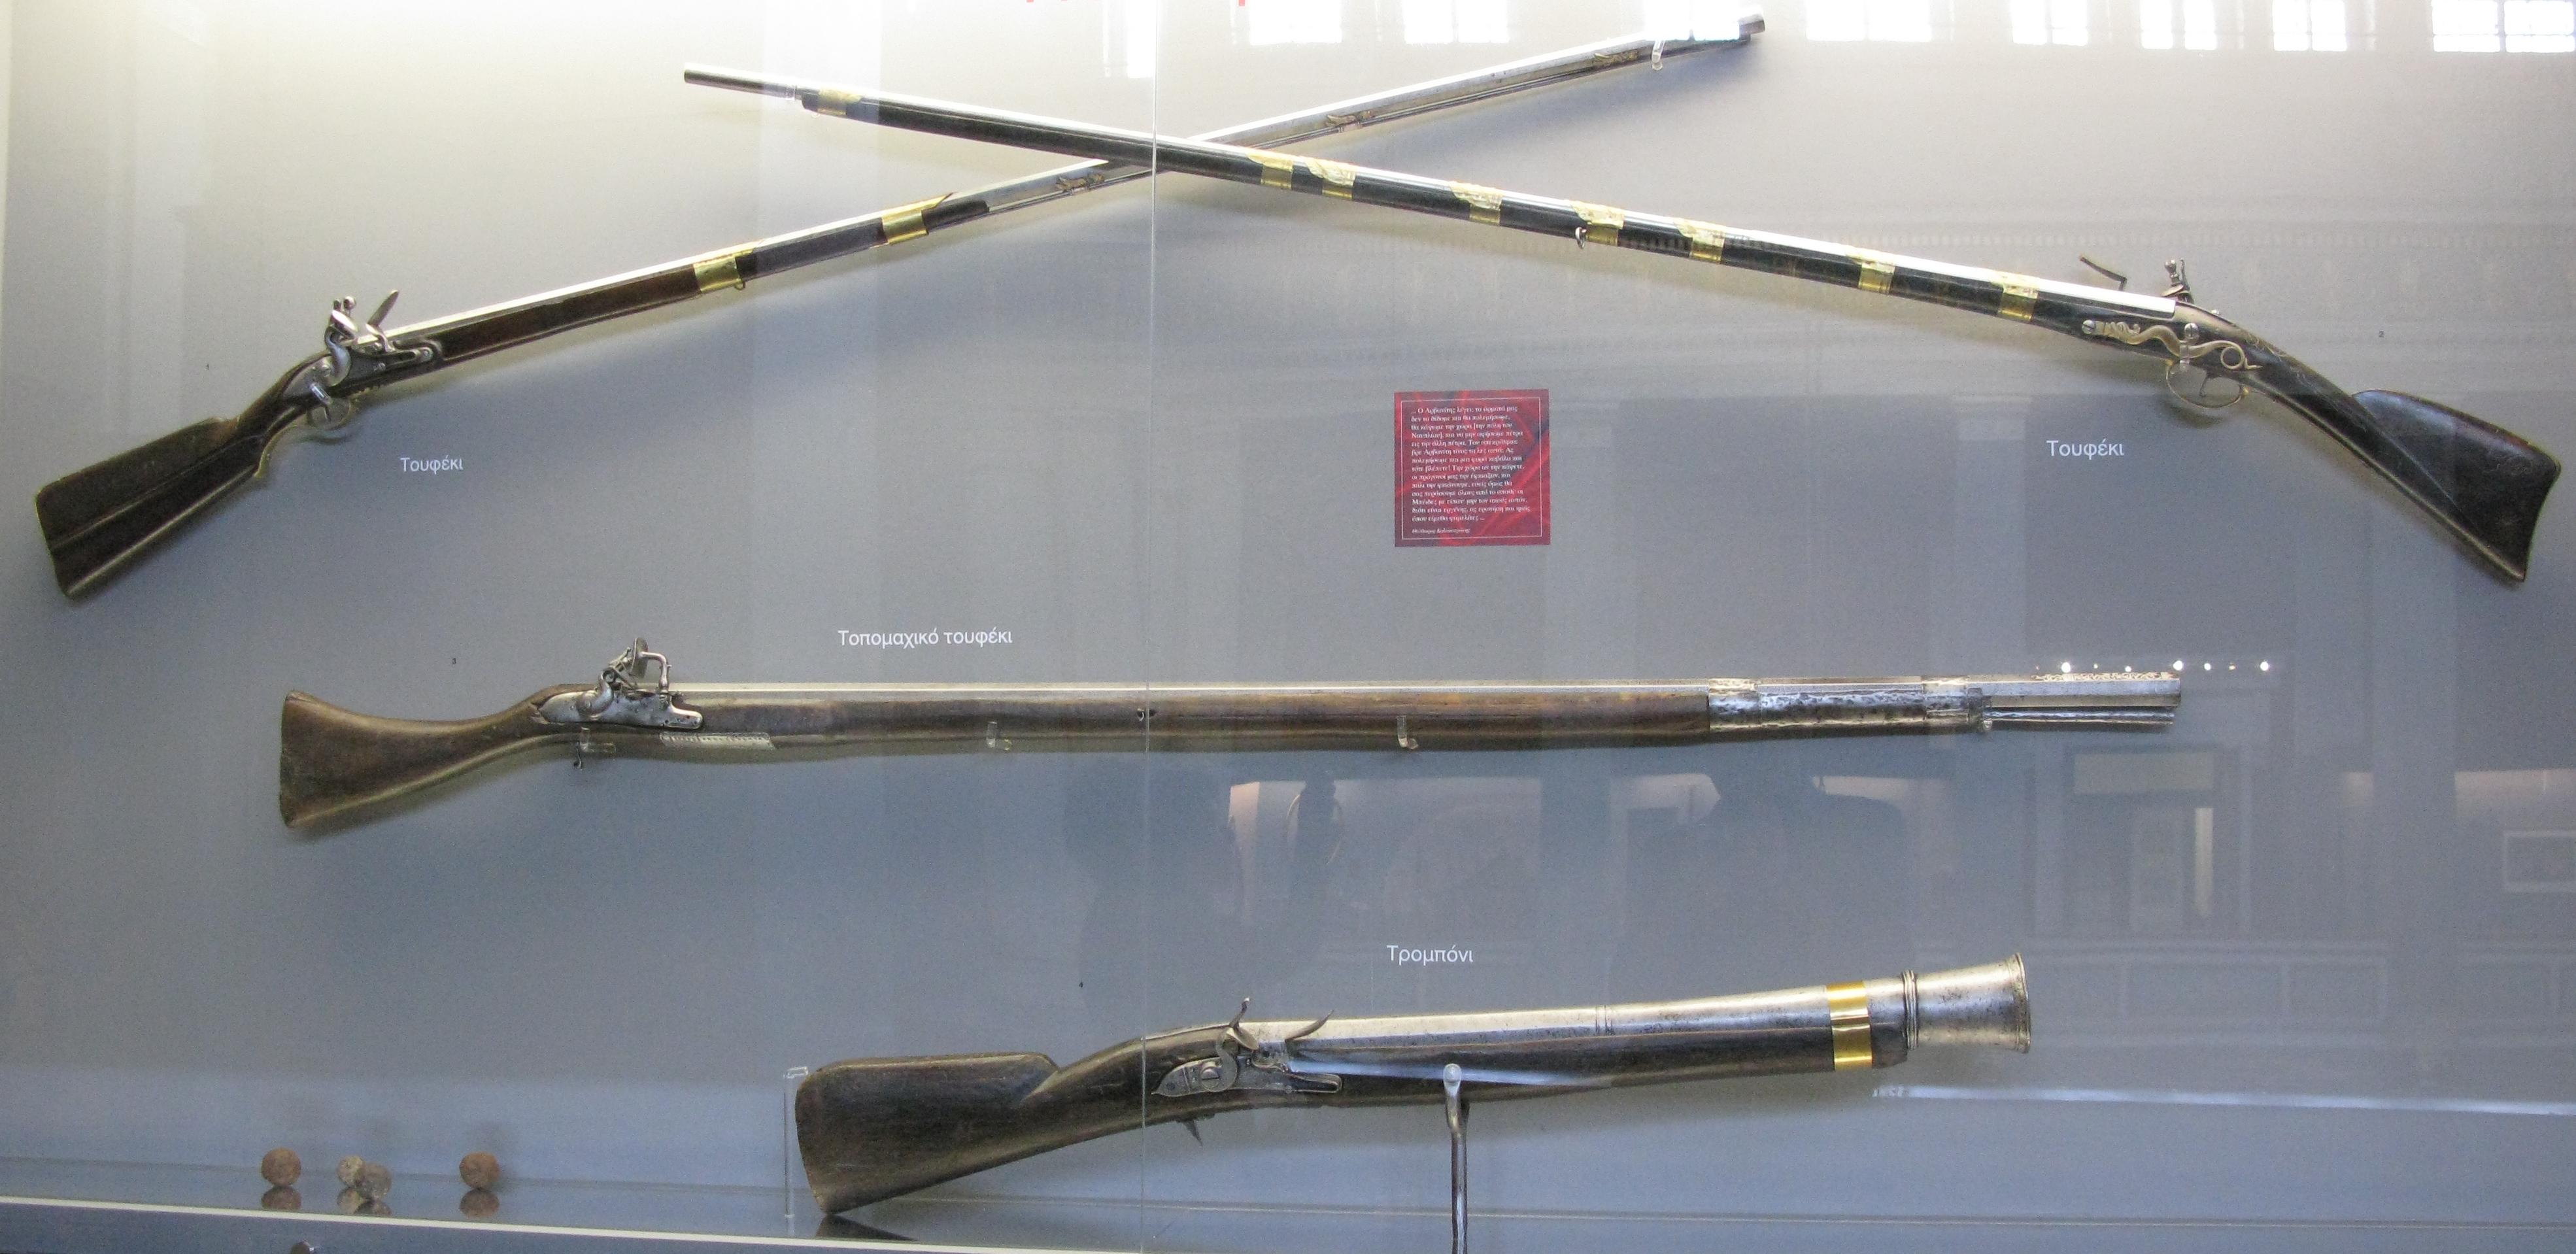 File:Firearms, National Historical Museum, Athens, Greece